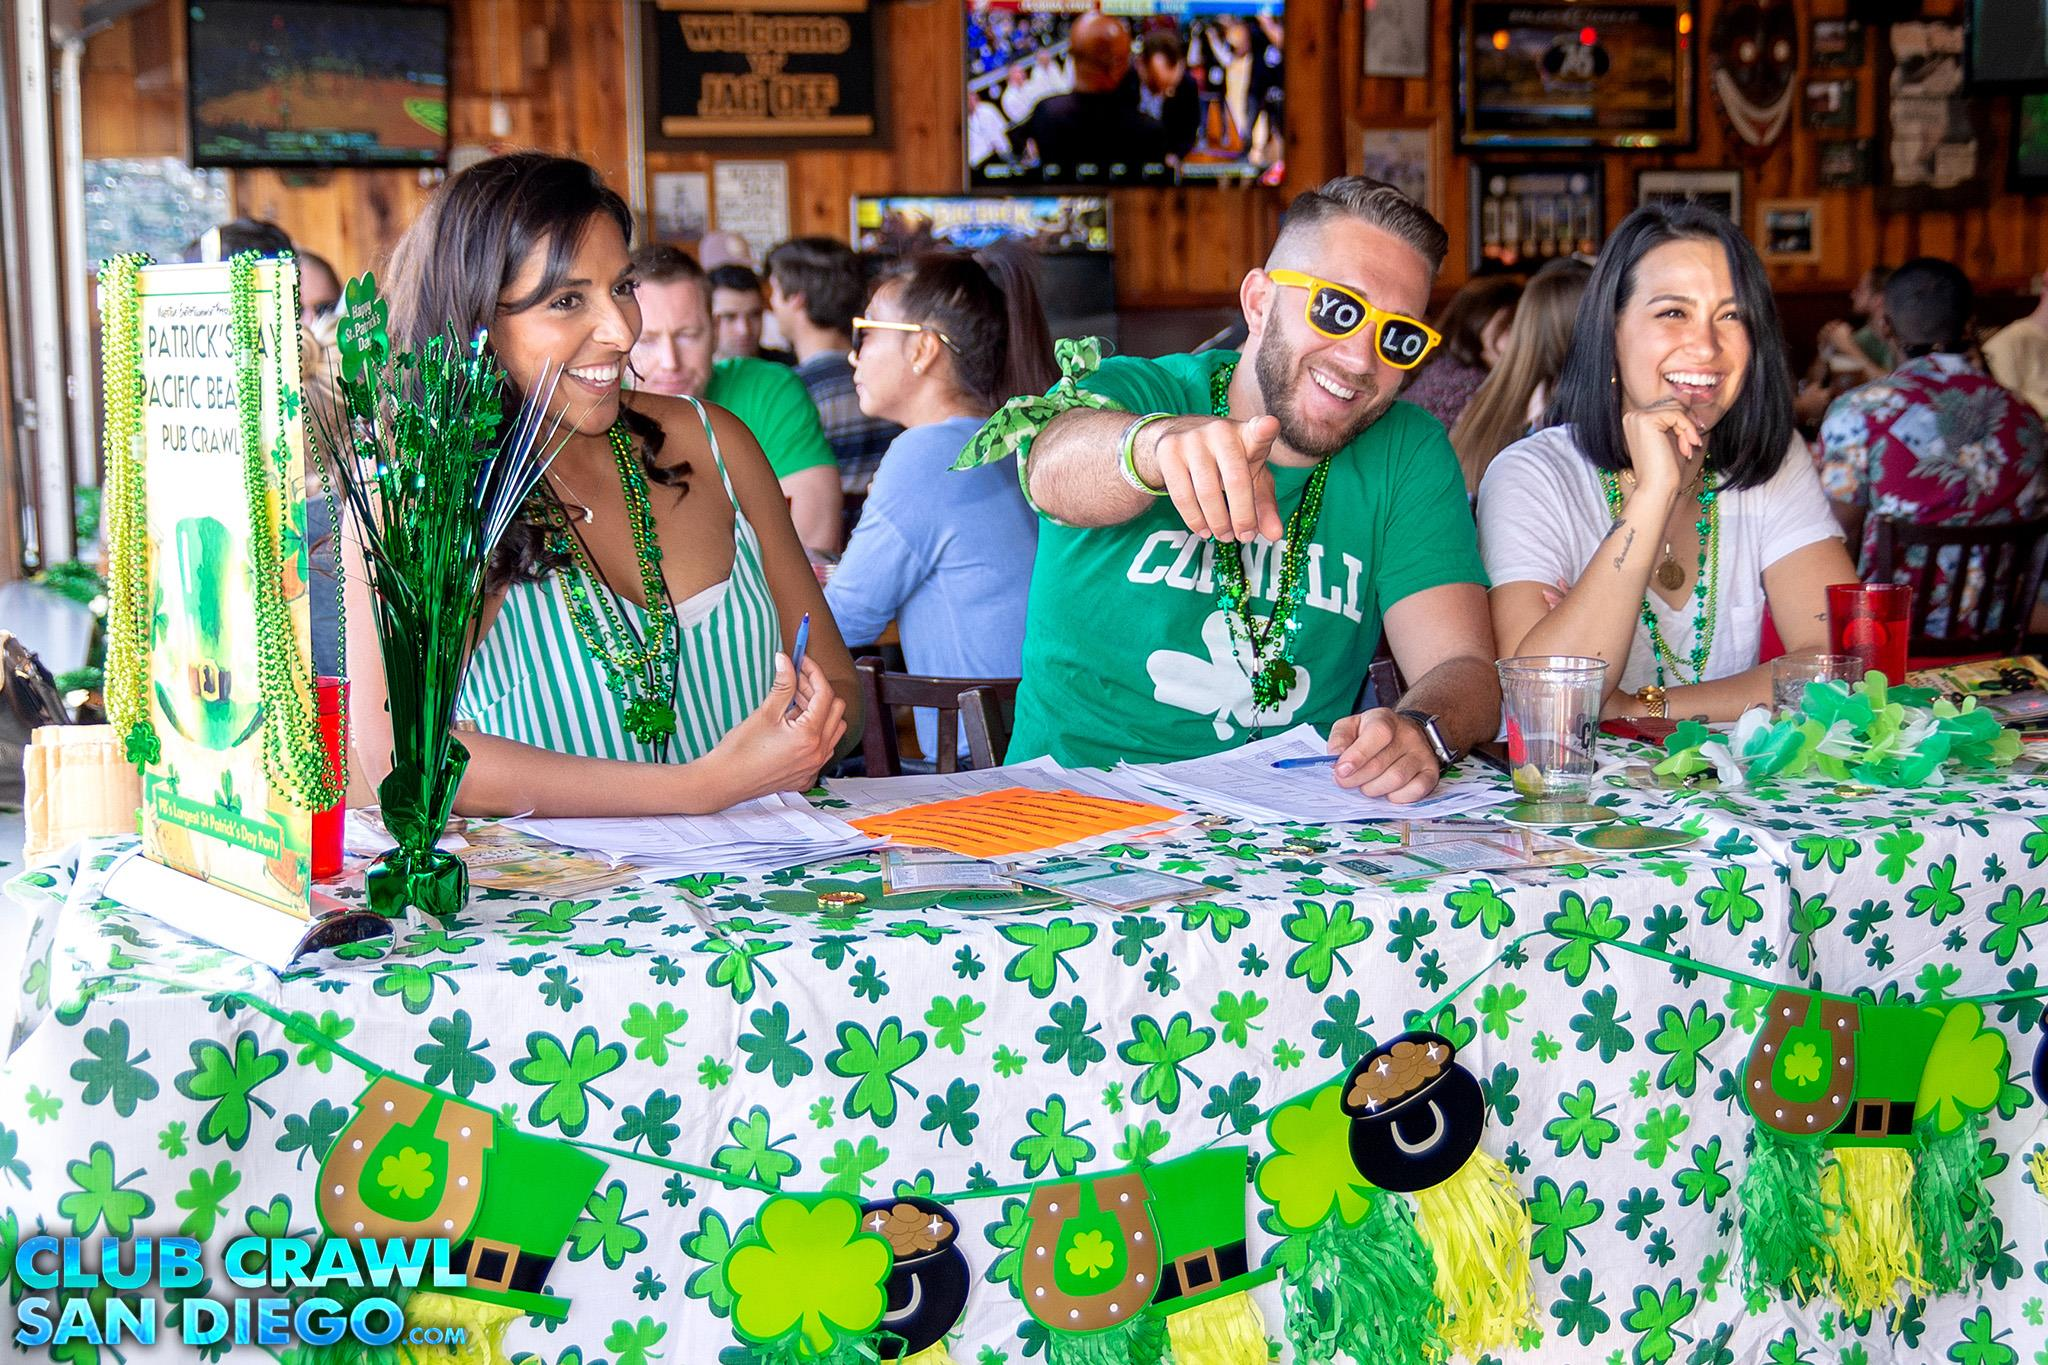 Daytime Pub Crawl Event on St. Patrick's Day